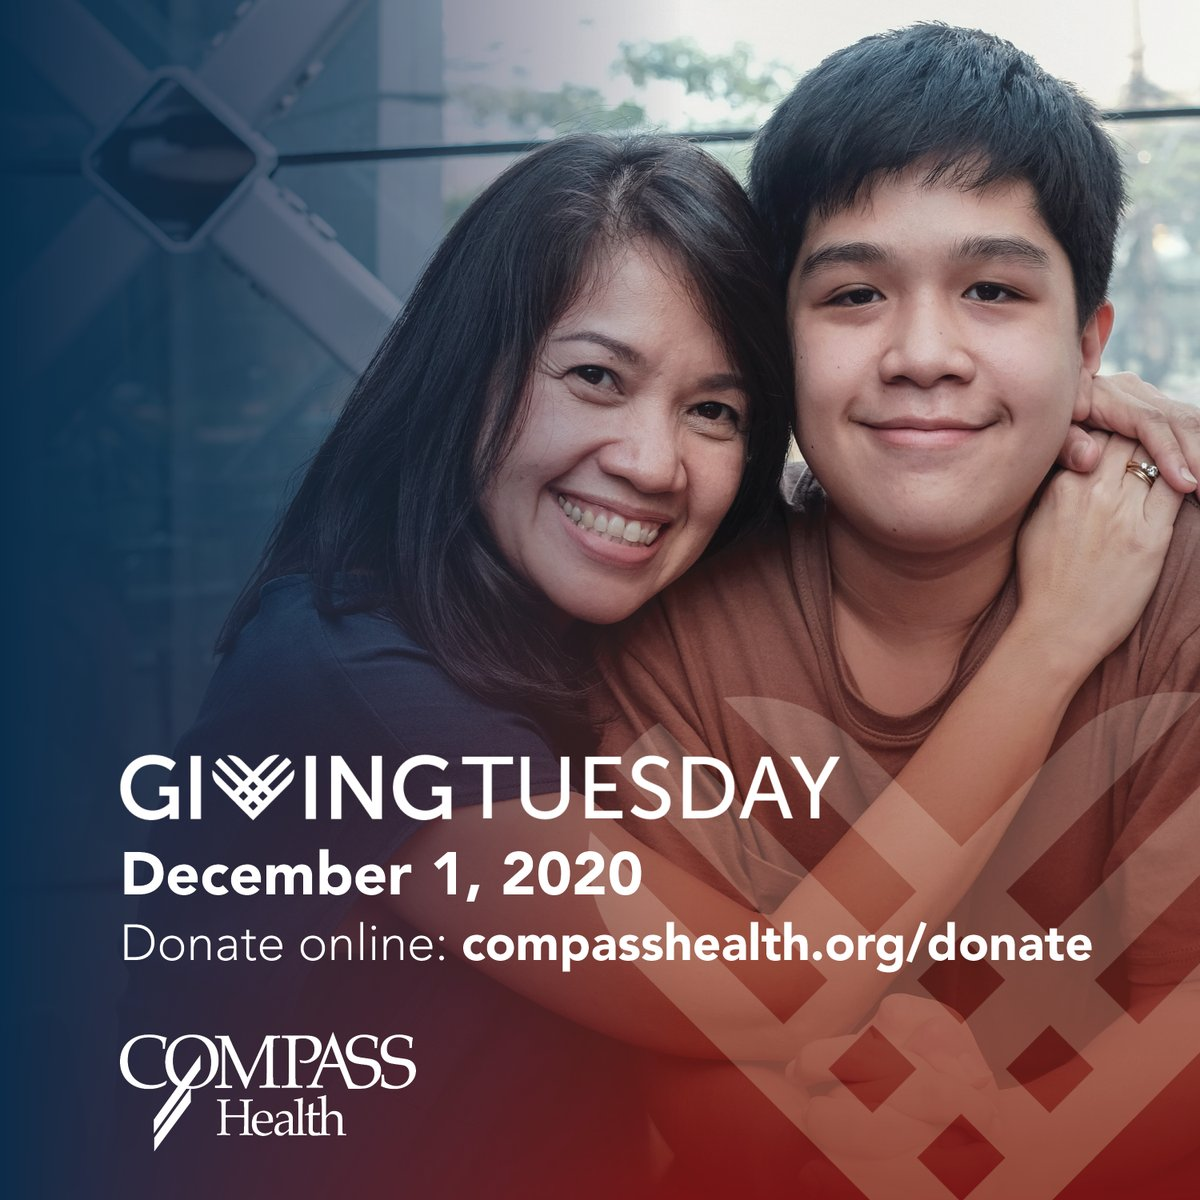 Tomorrow is #GivingTuesday   Your donation to Compass Health directly supports the child, youth, and family mental health services in your community.  Donate now: